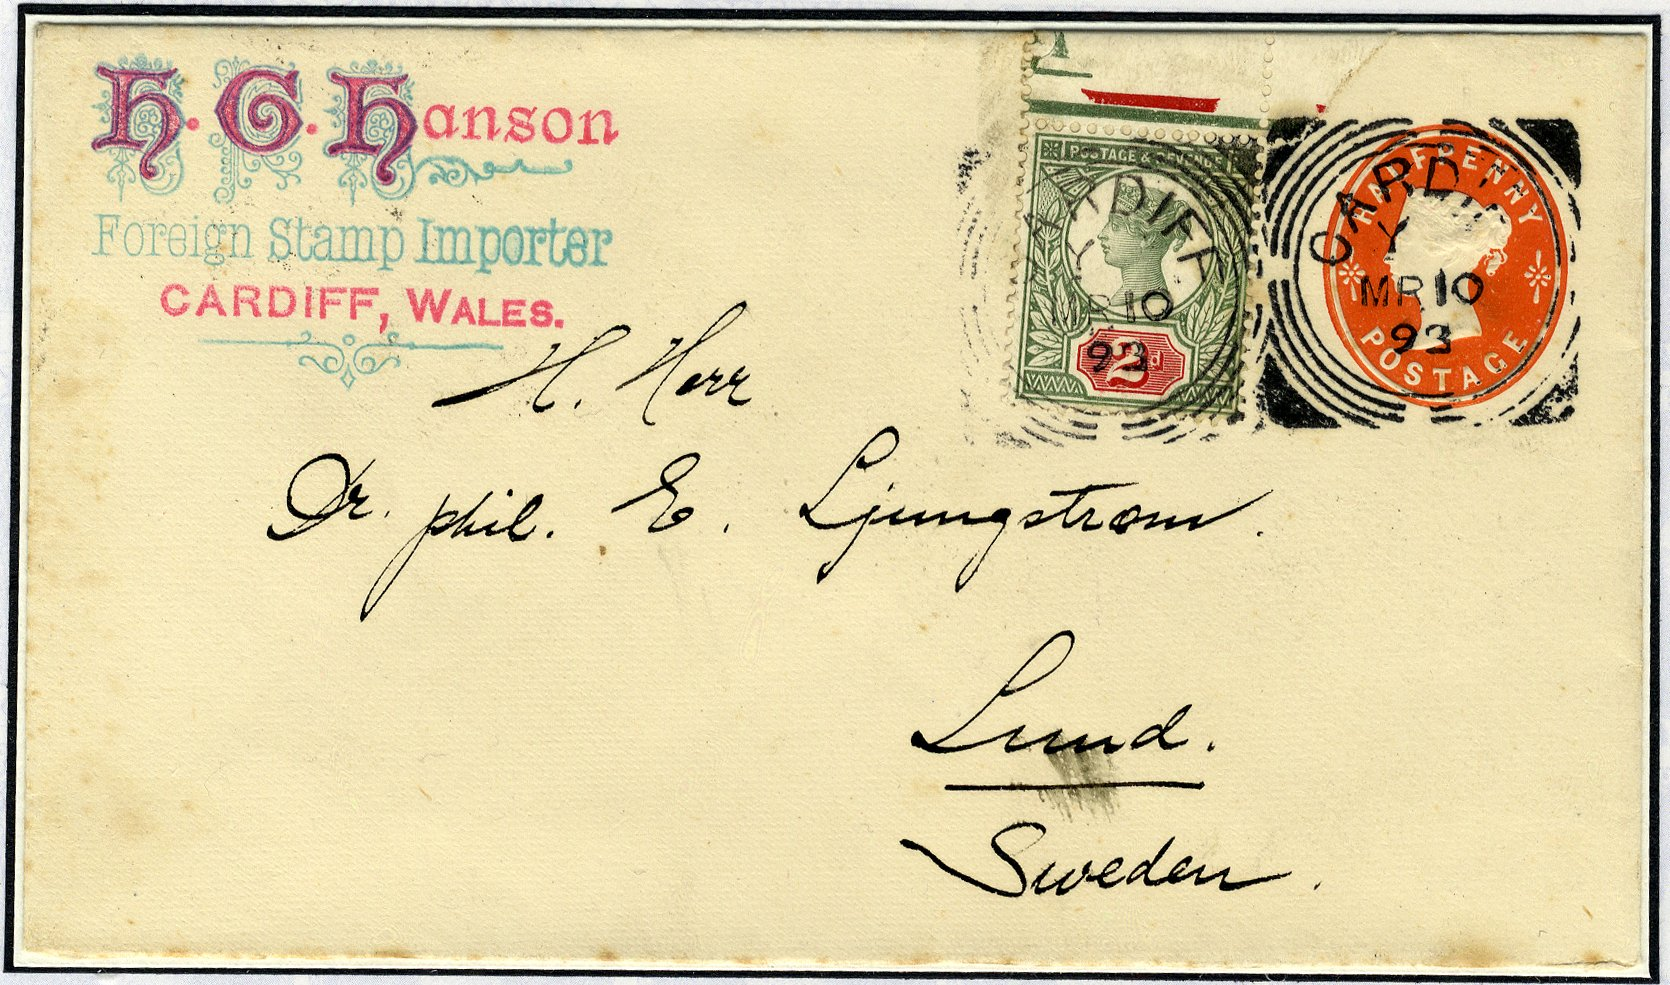 1893 cover advertising Hanson - Foreign Stamp Importer